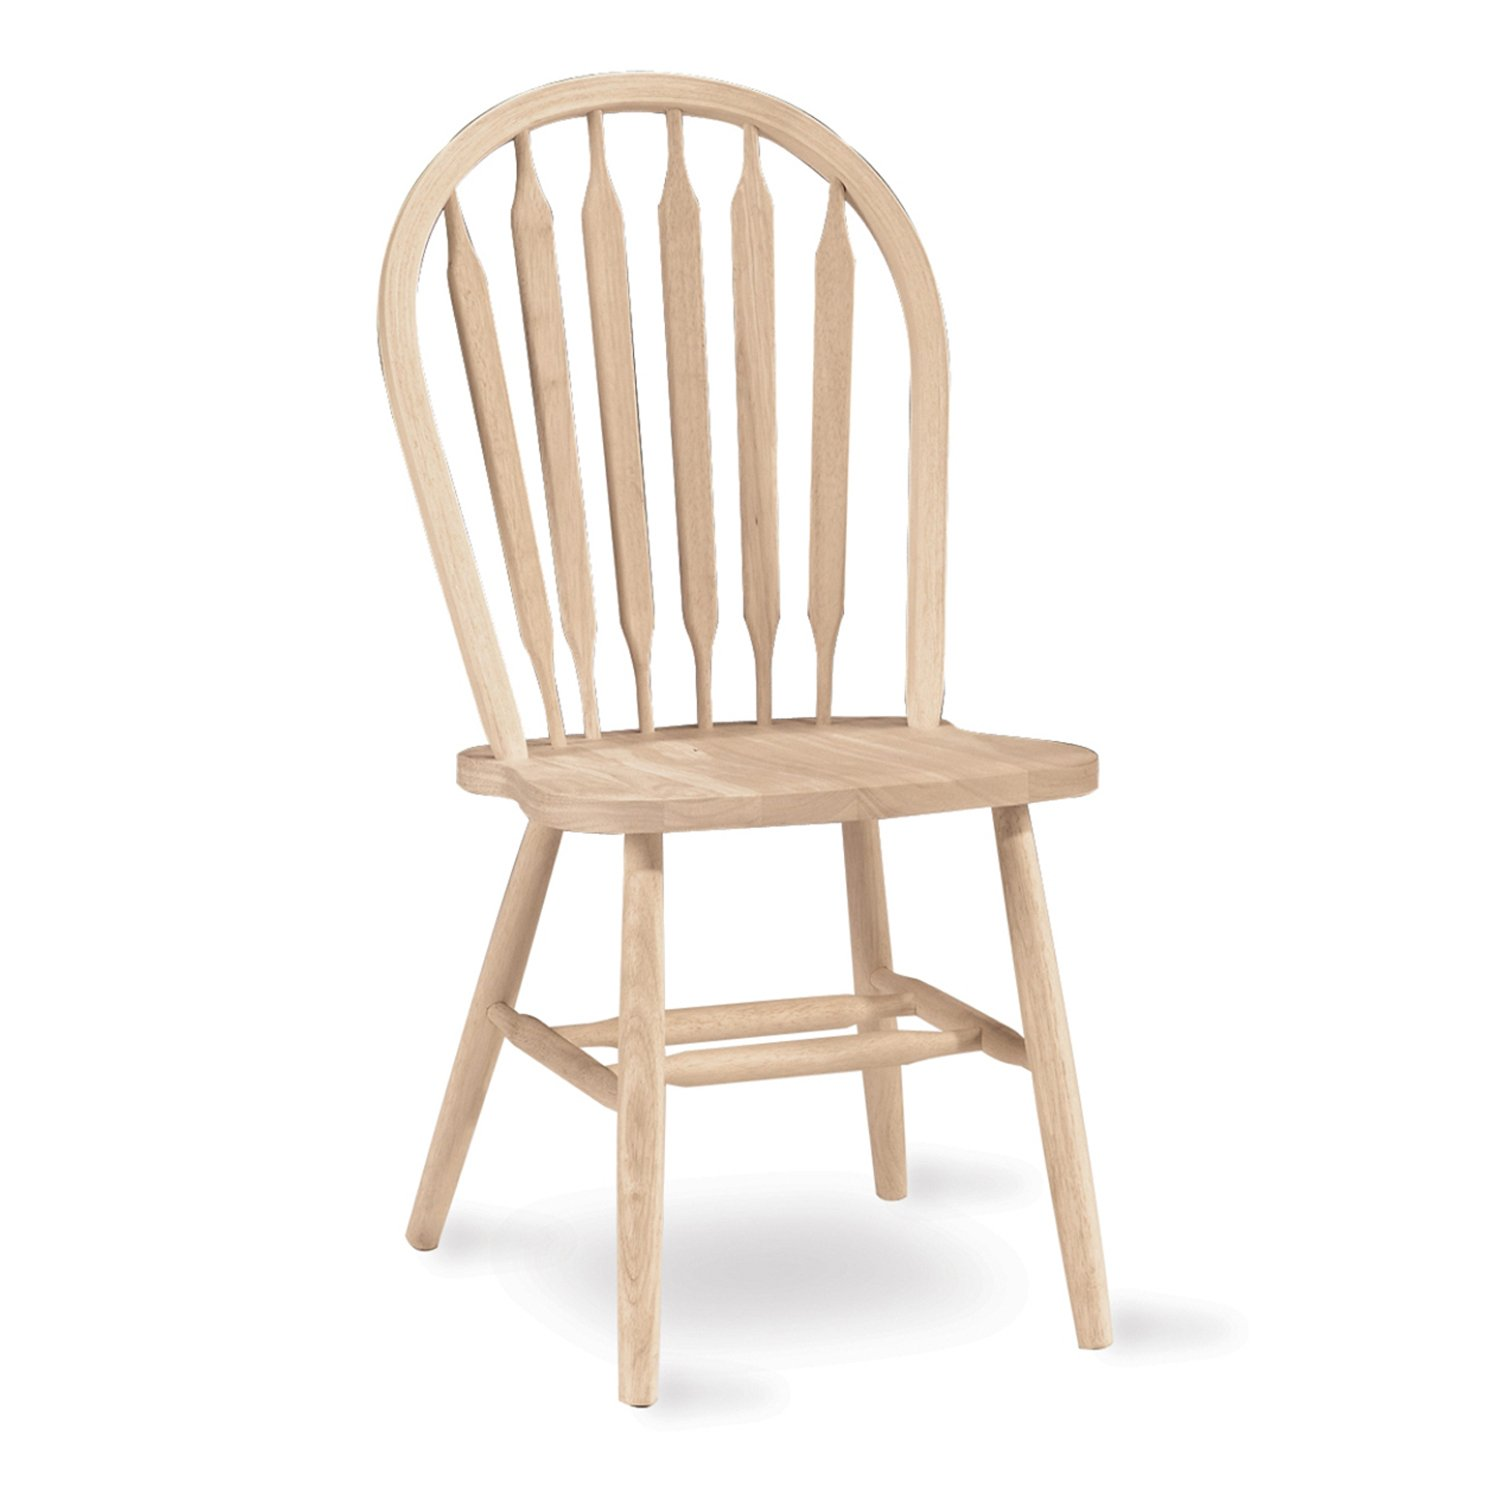 International Concepts 1C-113 37-Inch Arrow Back Chair, Unfinished